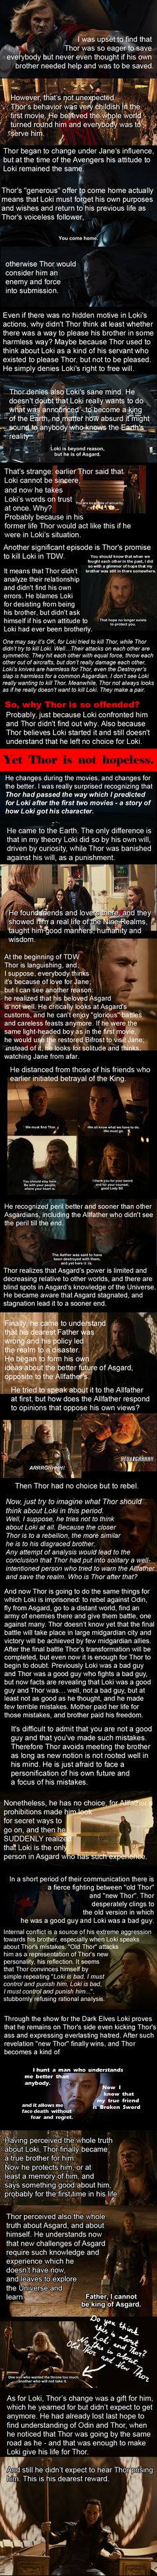 Interesting. Not sure I totally agree, at least on Loki's side, but interesting nonetheless.